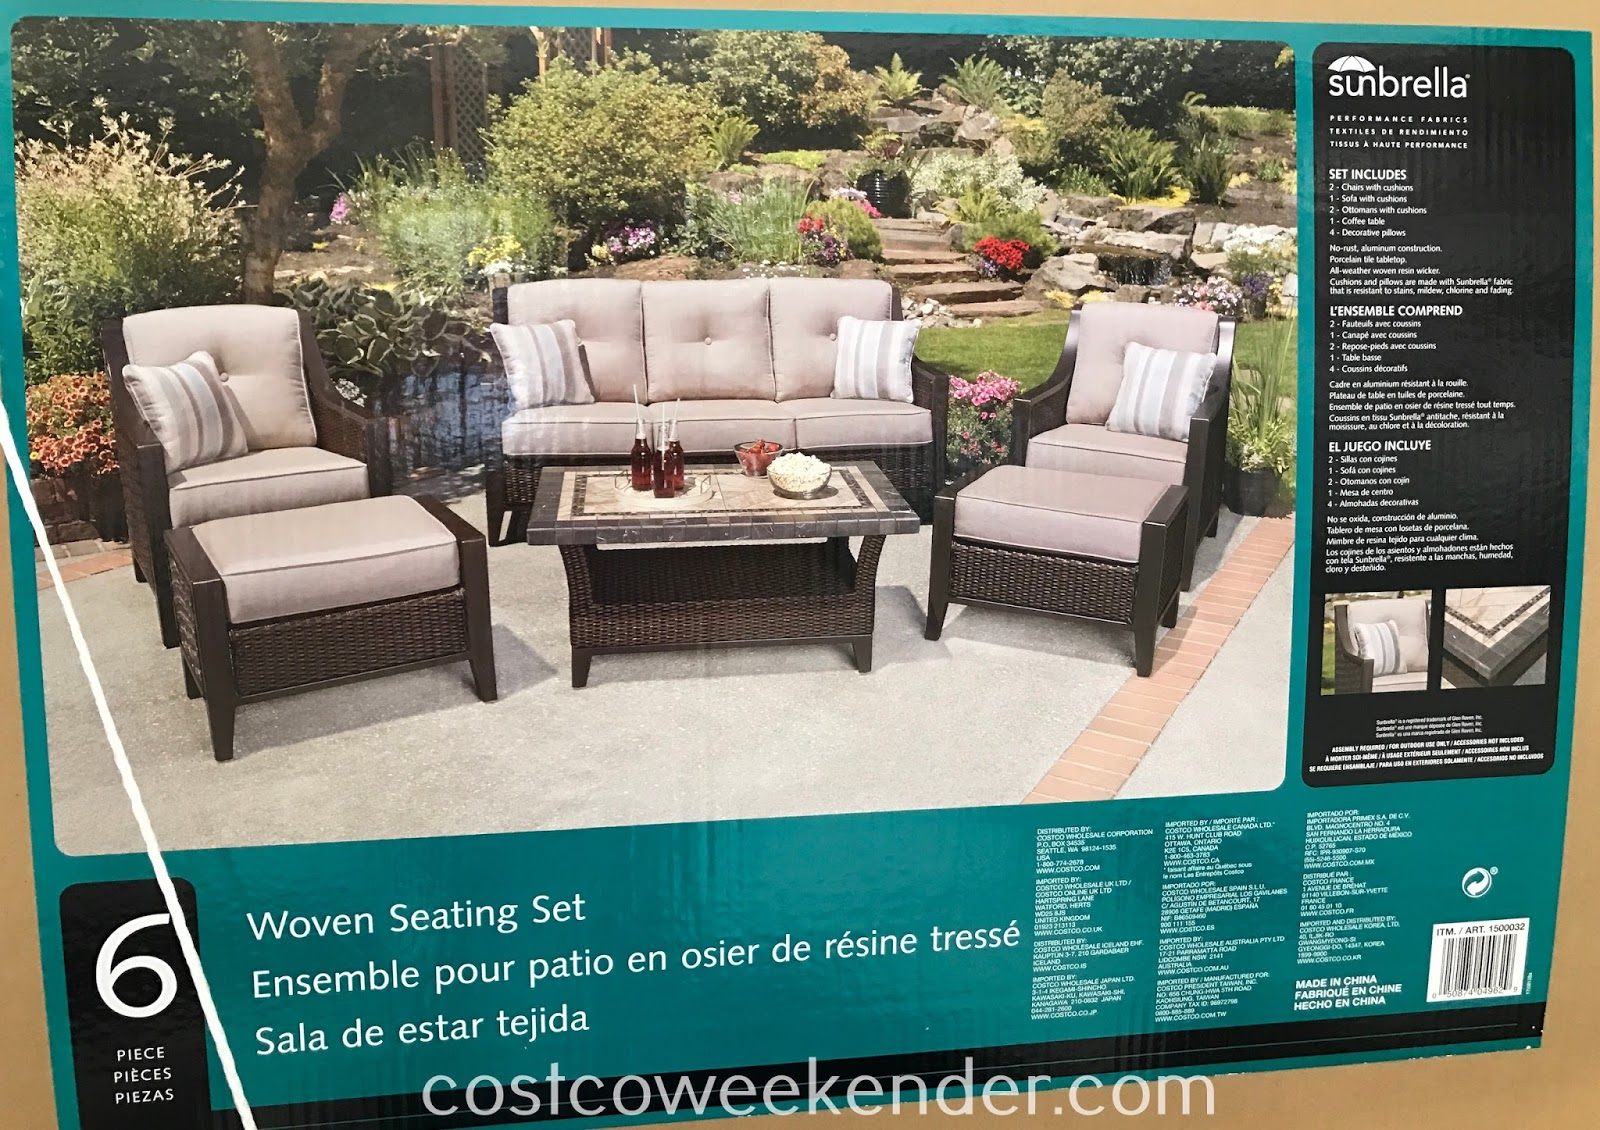 Agio 6-piece Woven Deep Seating Set: perfect for a backyard barbecue